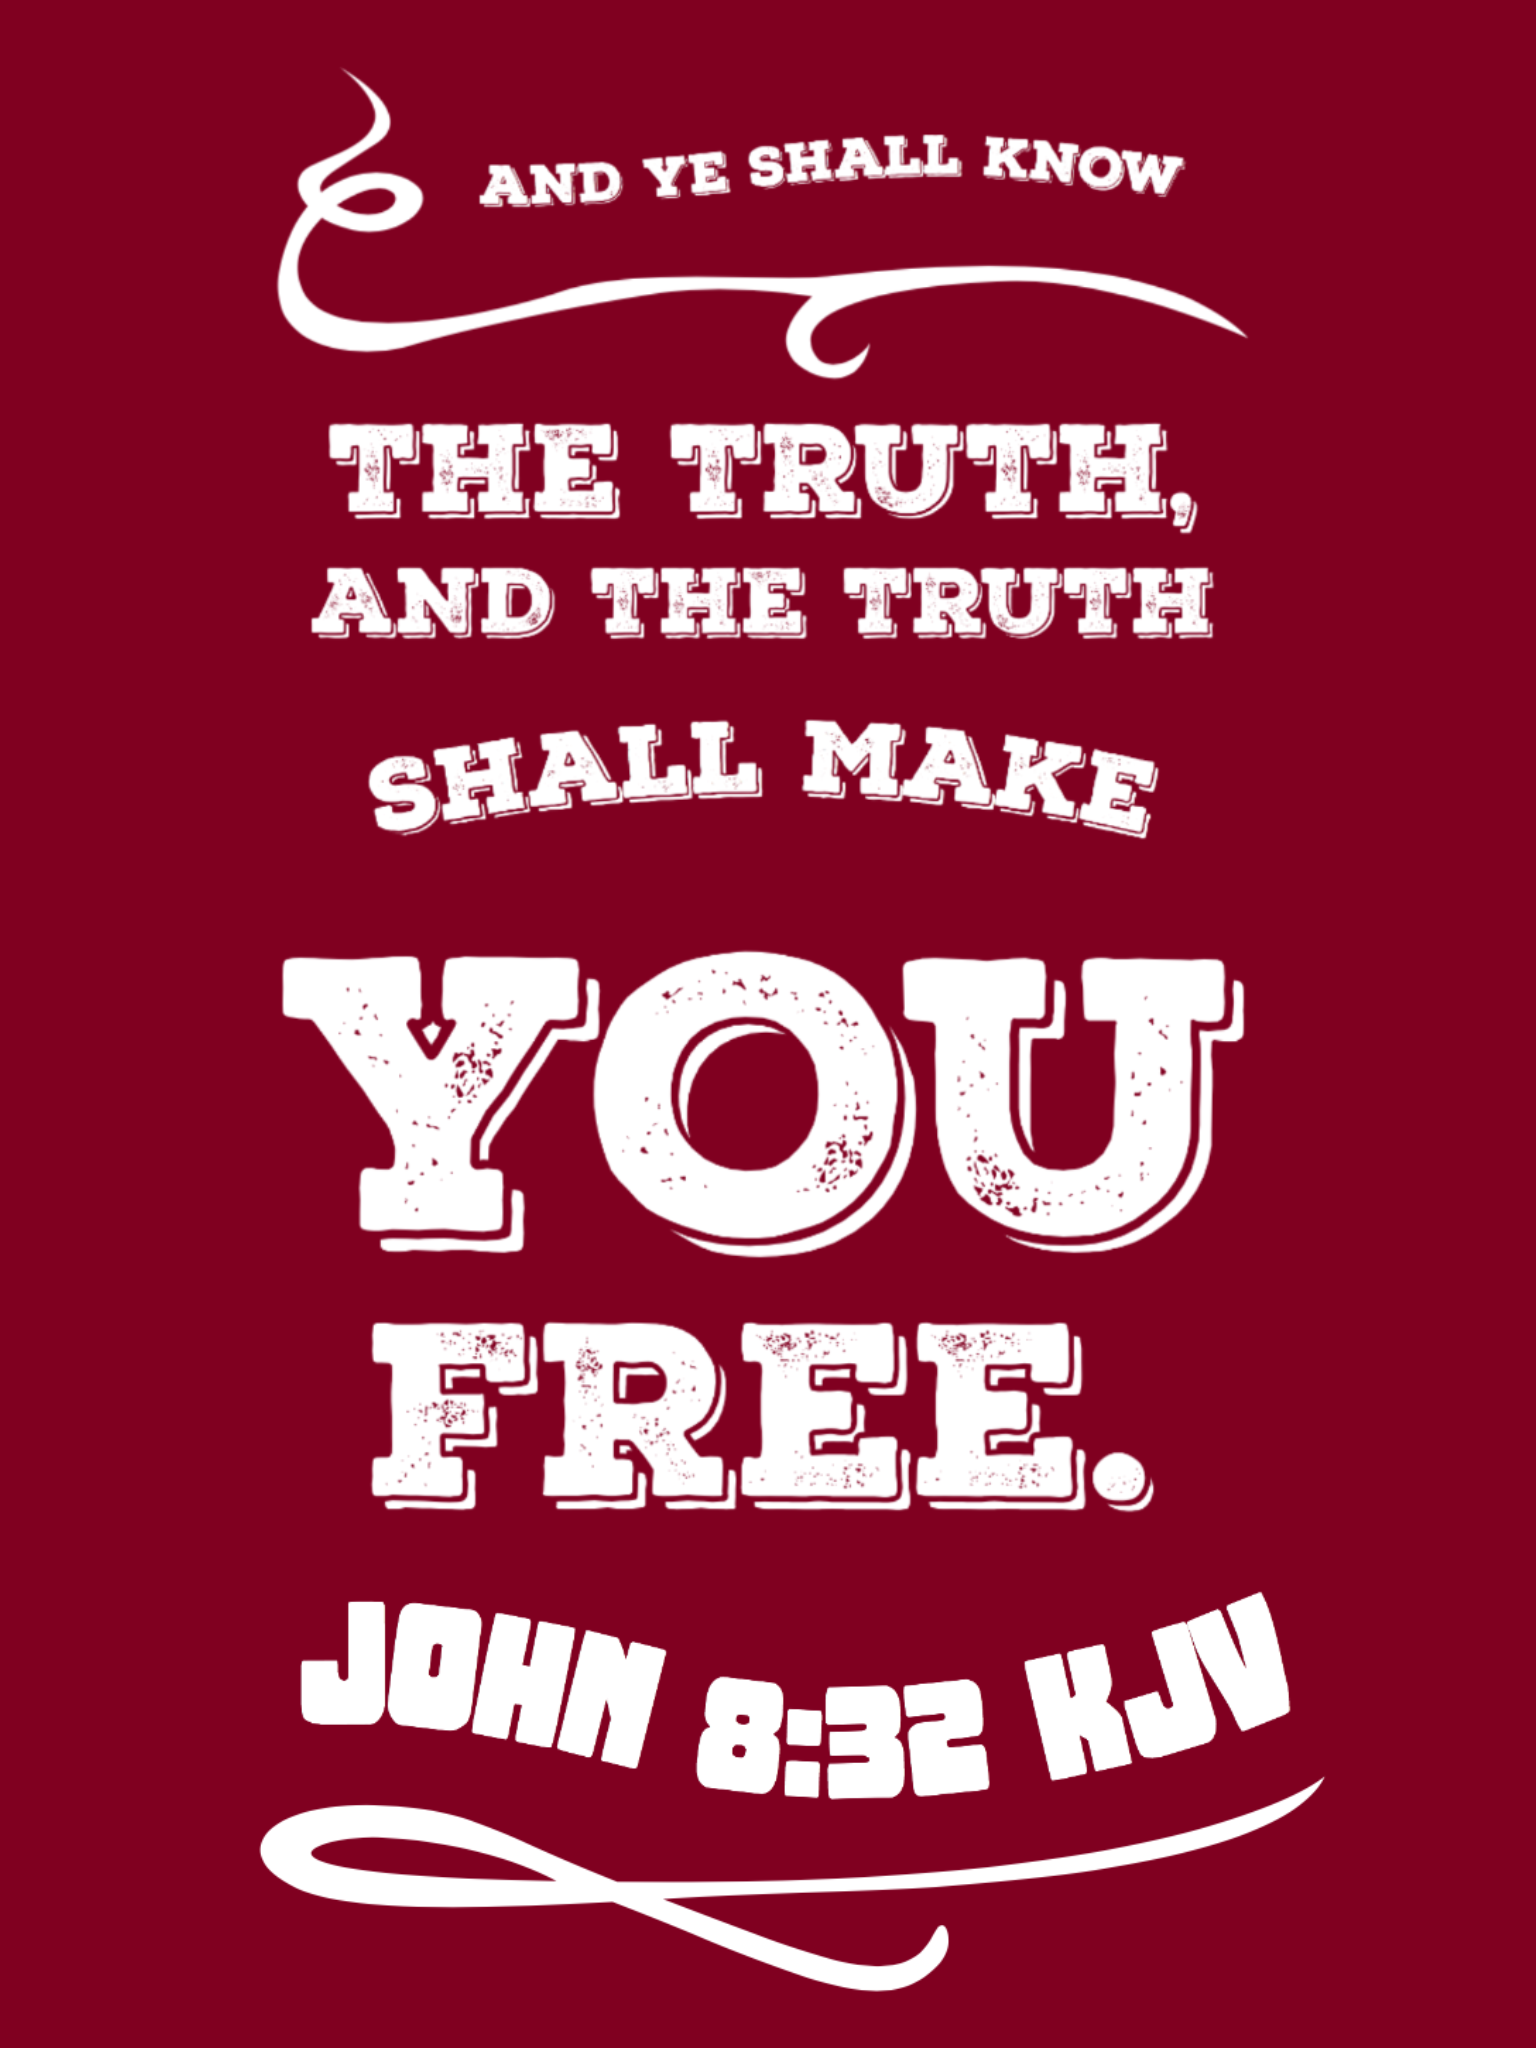 bible verse truth will set you free kjv